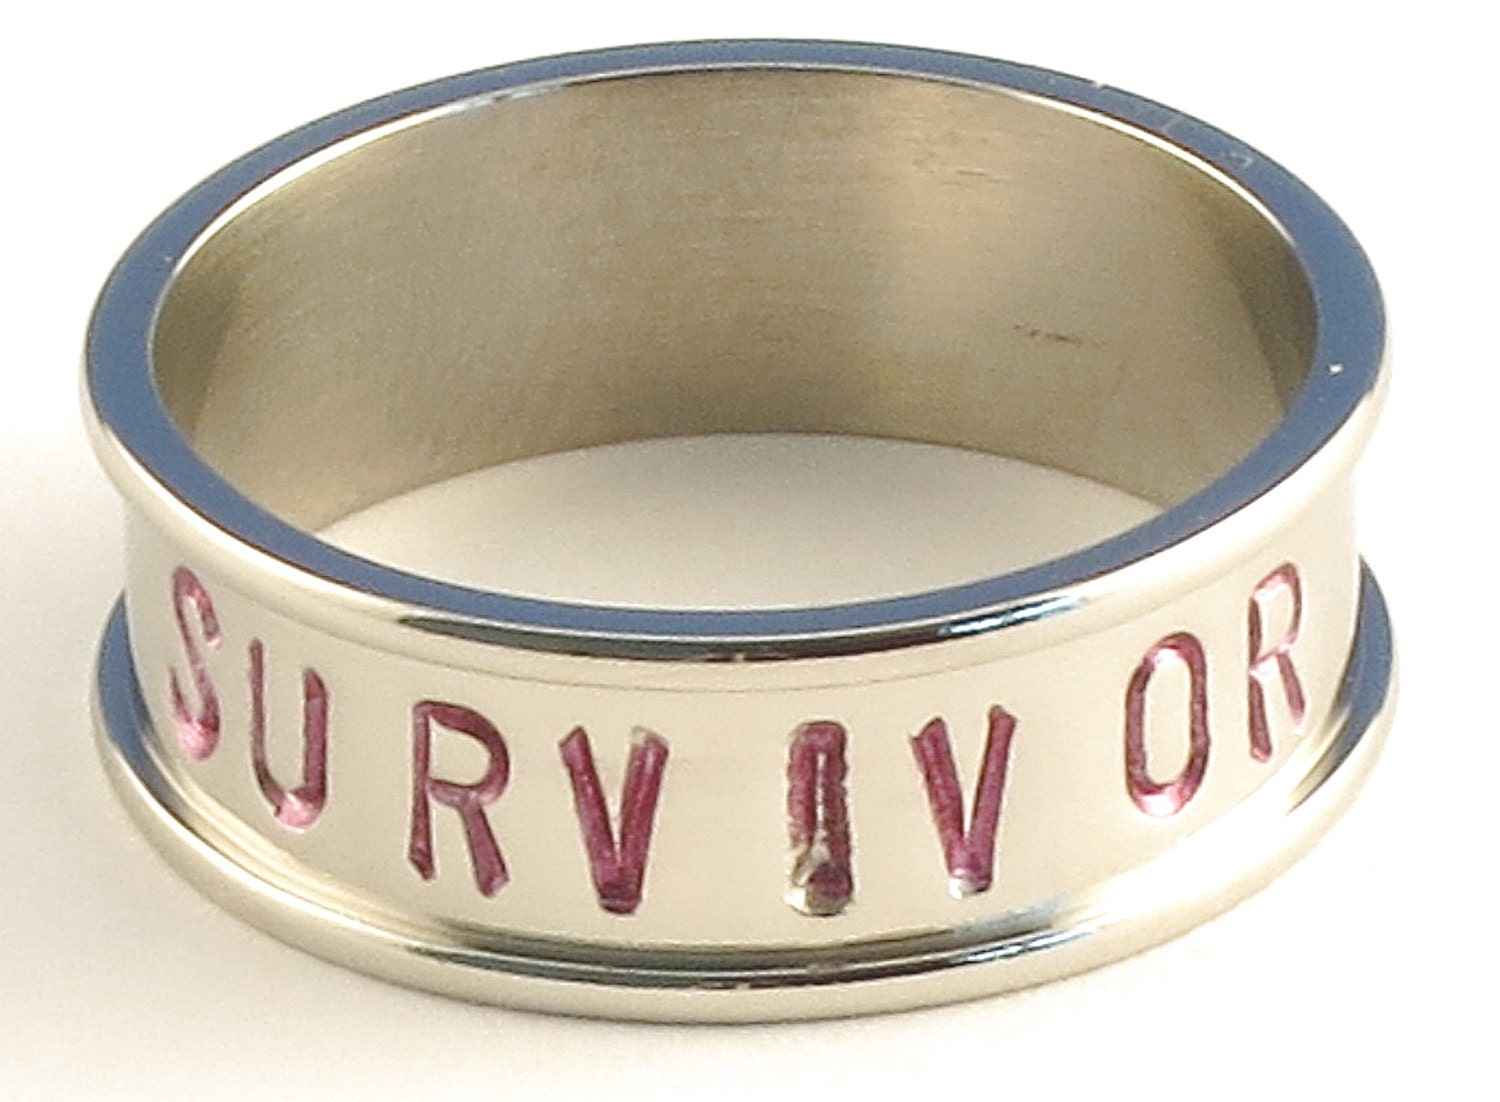 SURVIVOR in Pink Font - Stainless Steel Channel Band Name Ring 7mm - Available in Ring Sizes 3-14